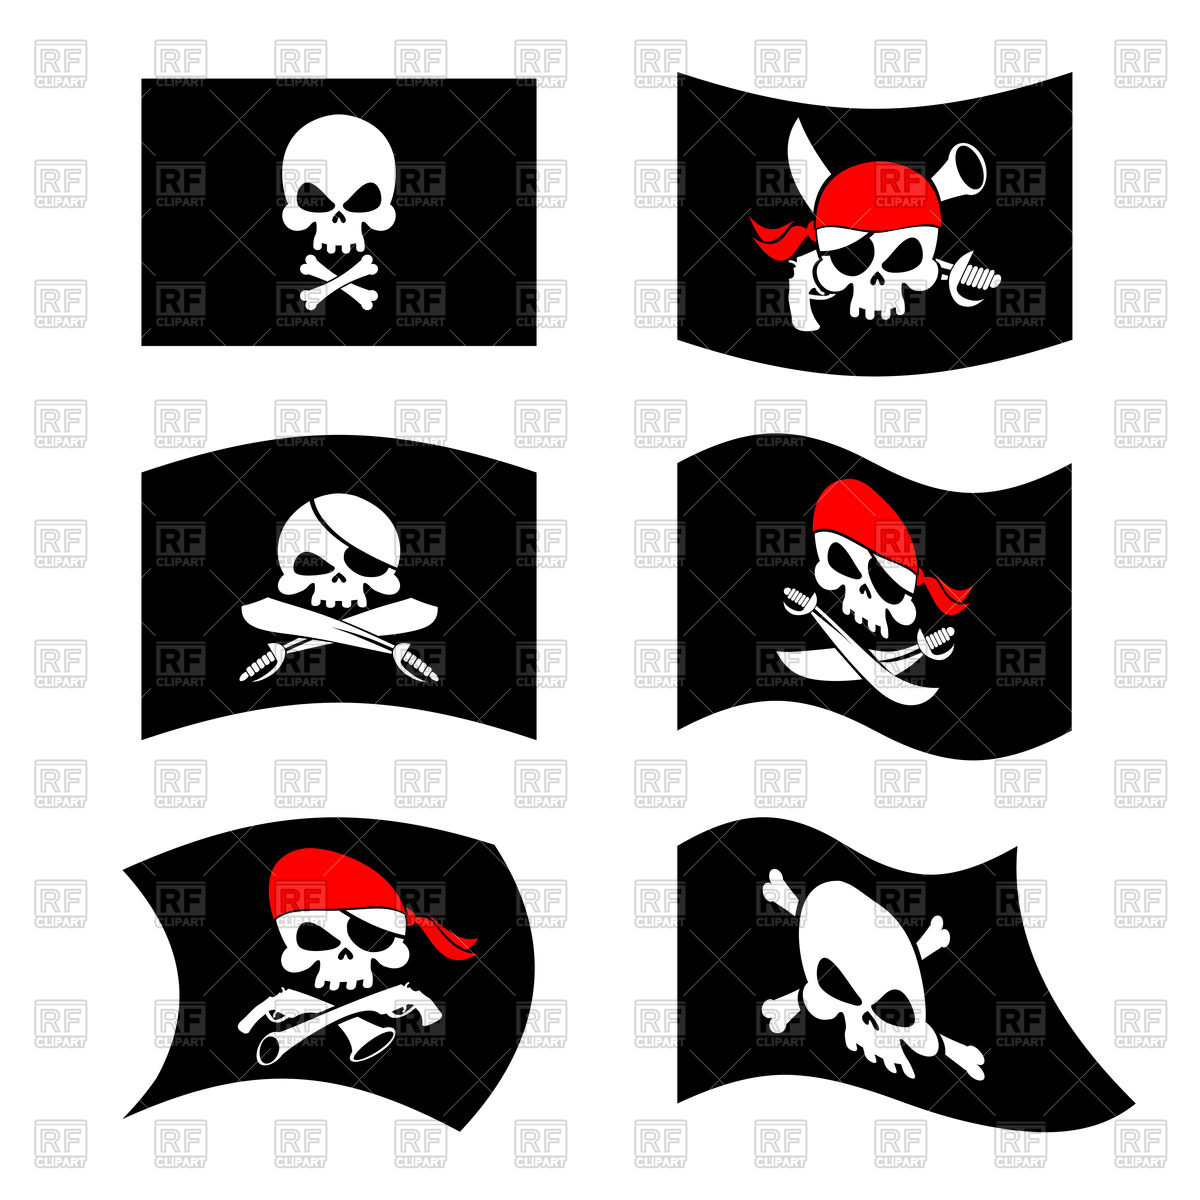 1200x1200 Set Of Jolly Roger Icons, Pirate Flag, Skull And Crossbones Vector